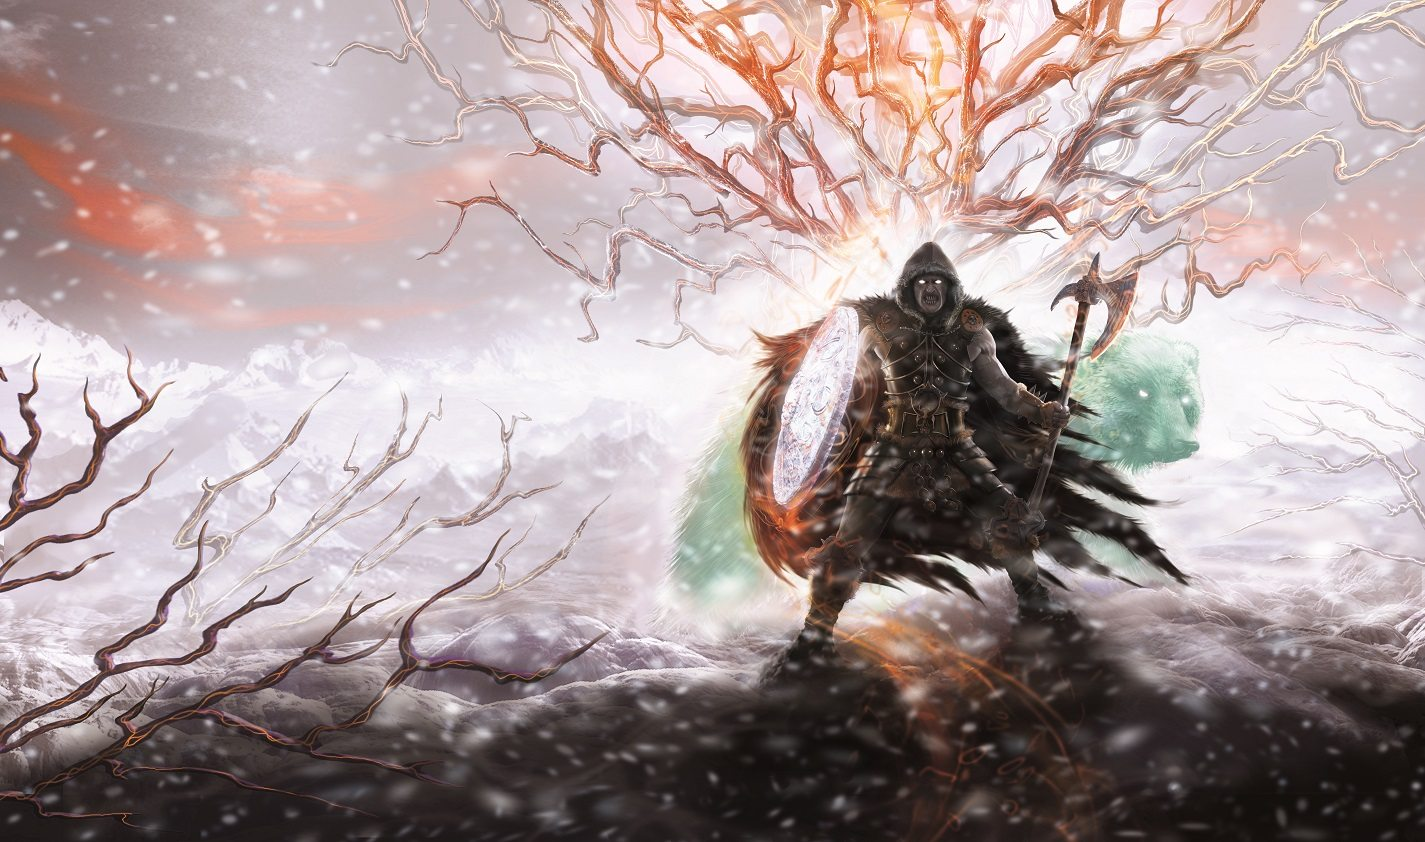 Eye of Winter's Fury cover spread